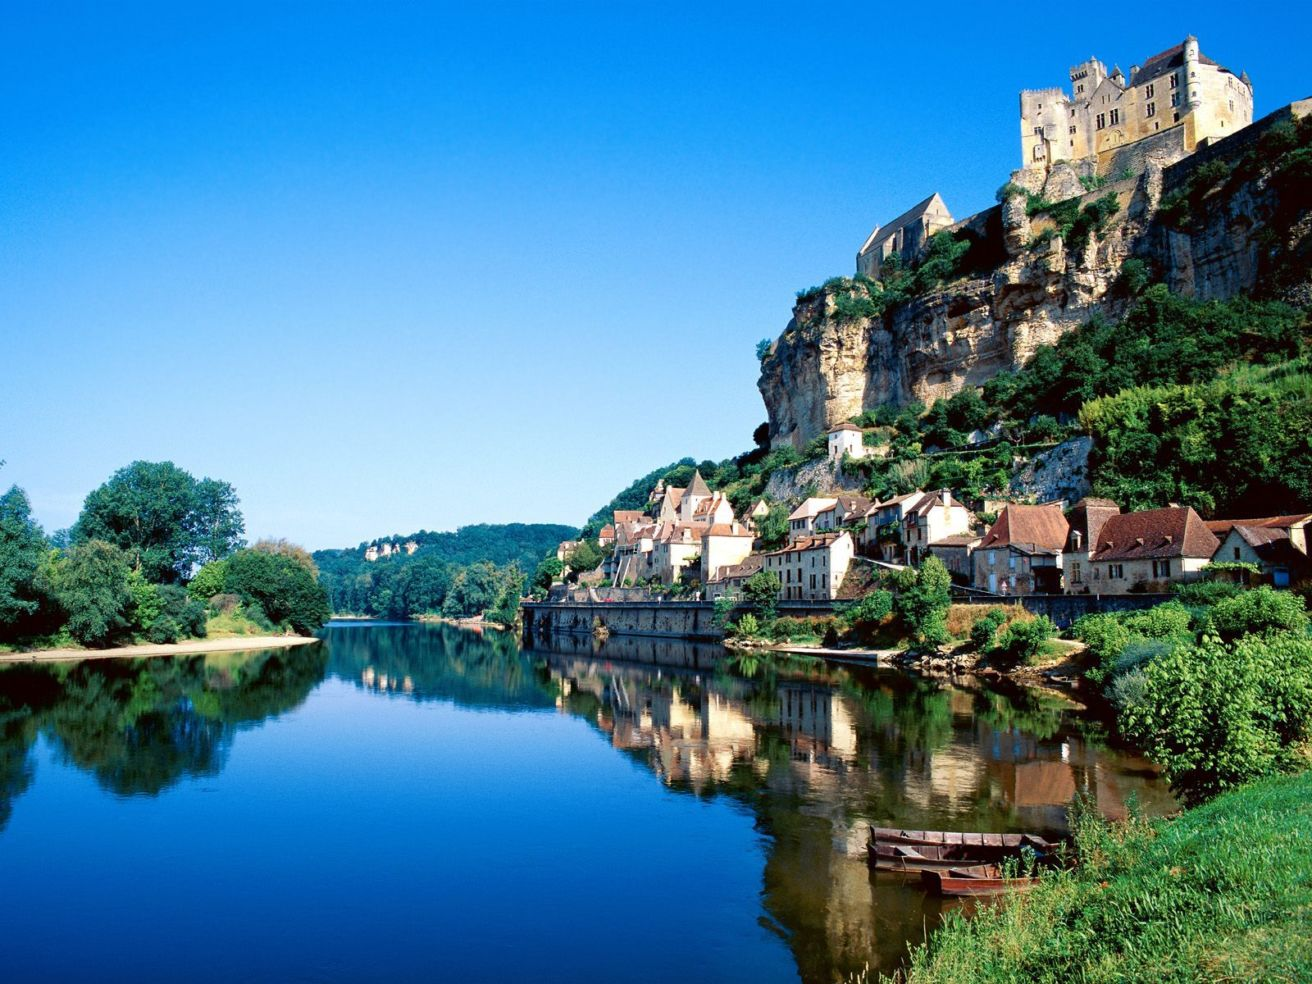 Dordogne River in France